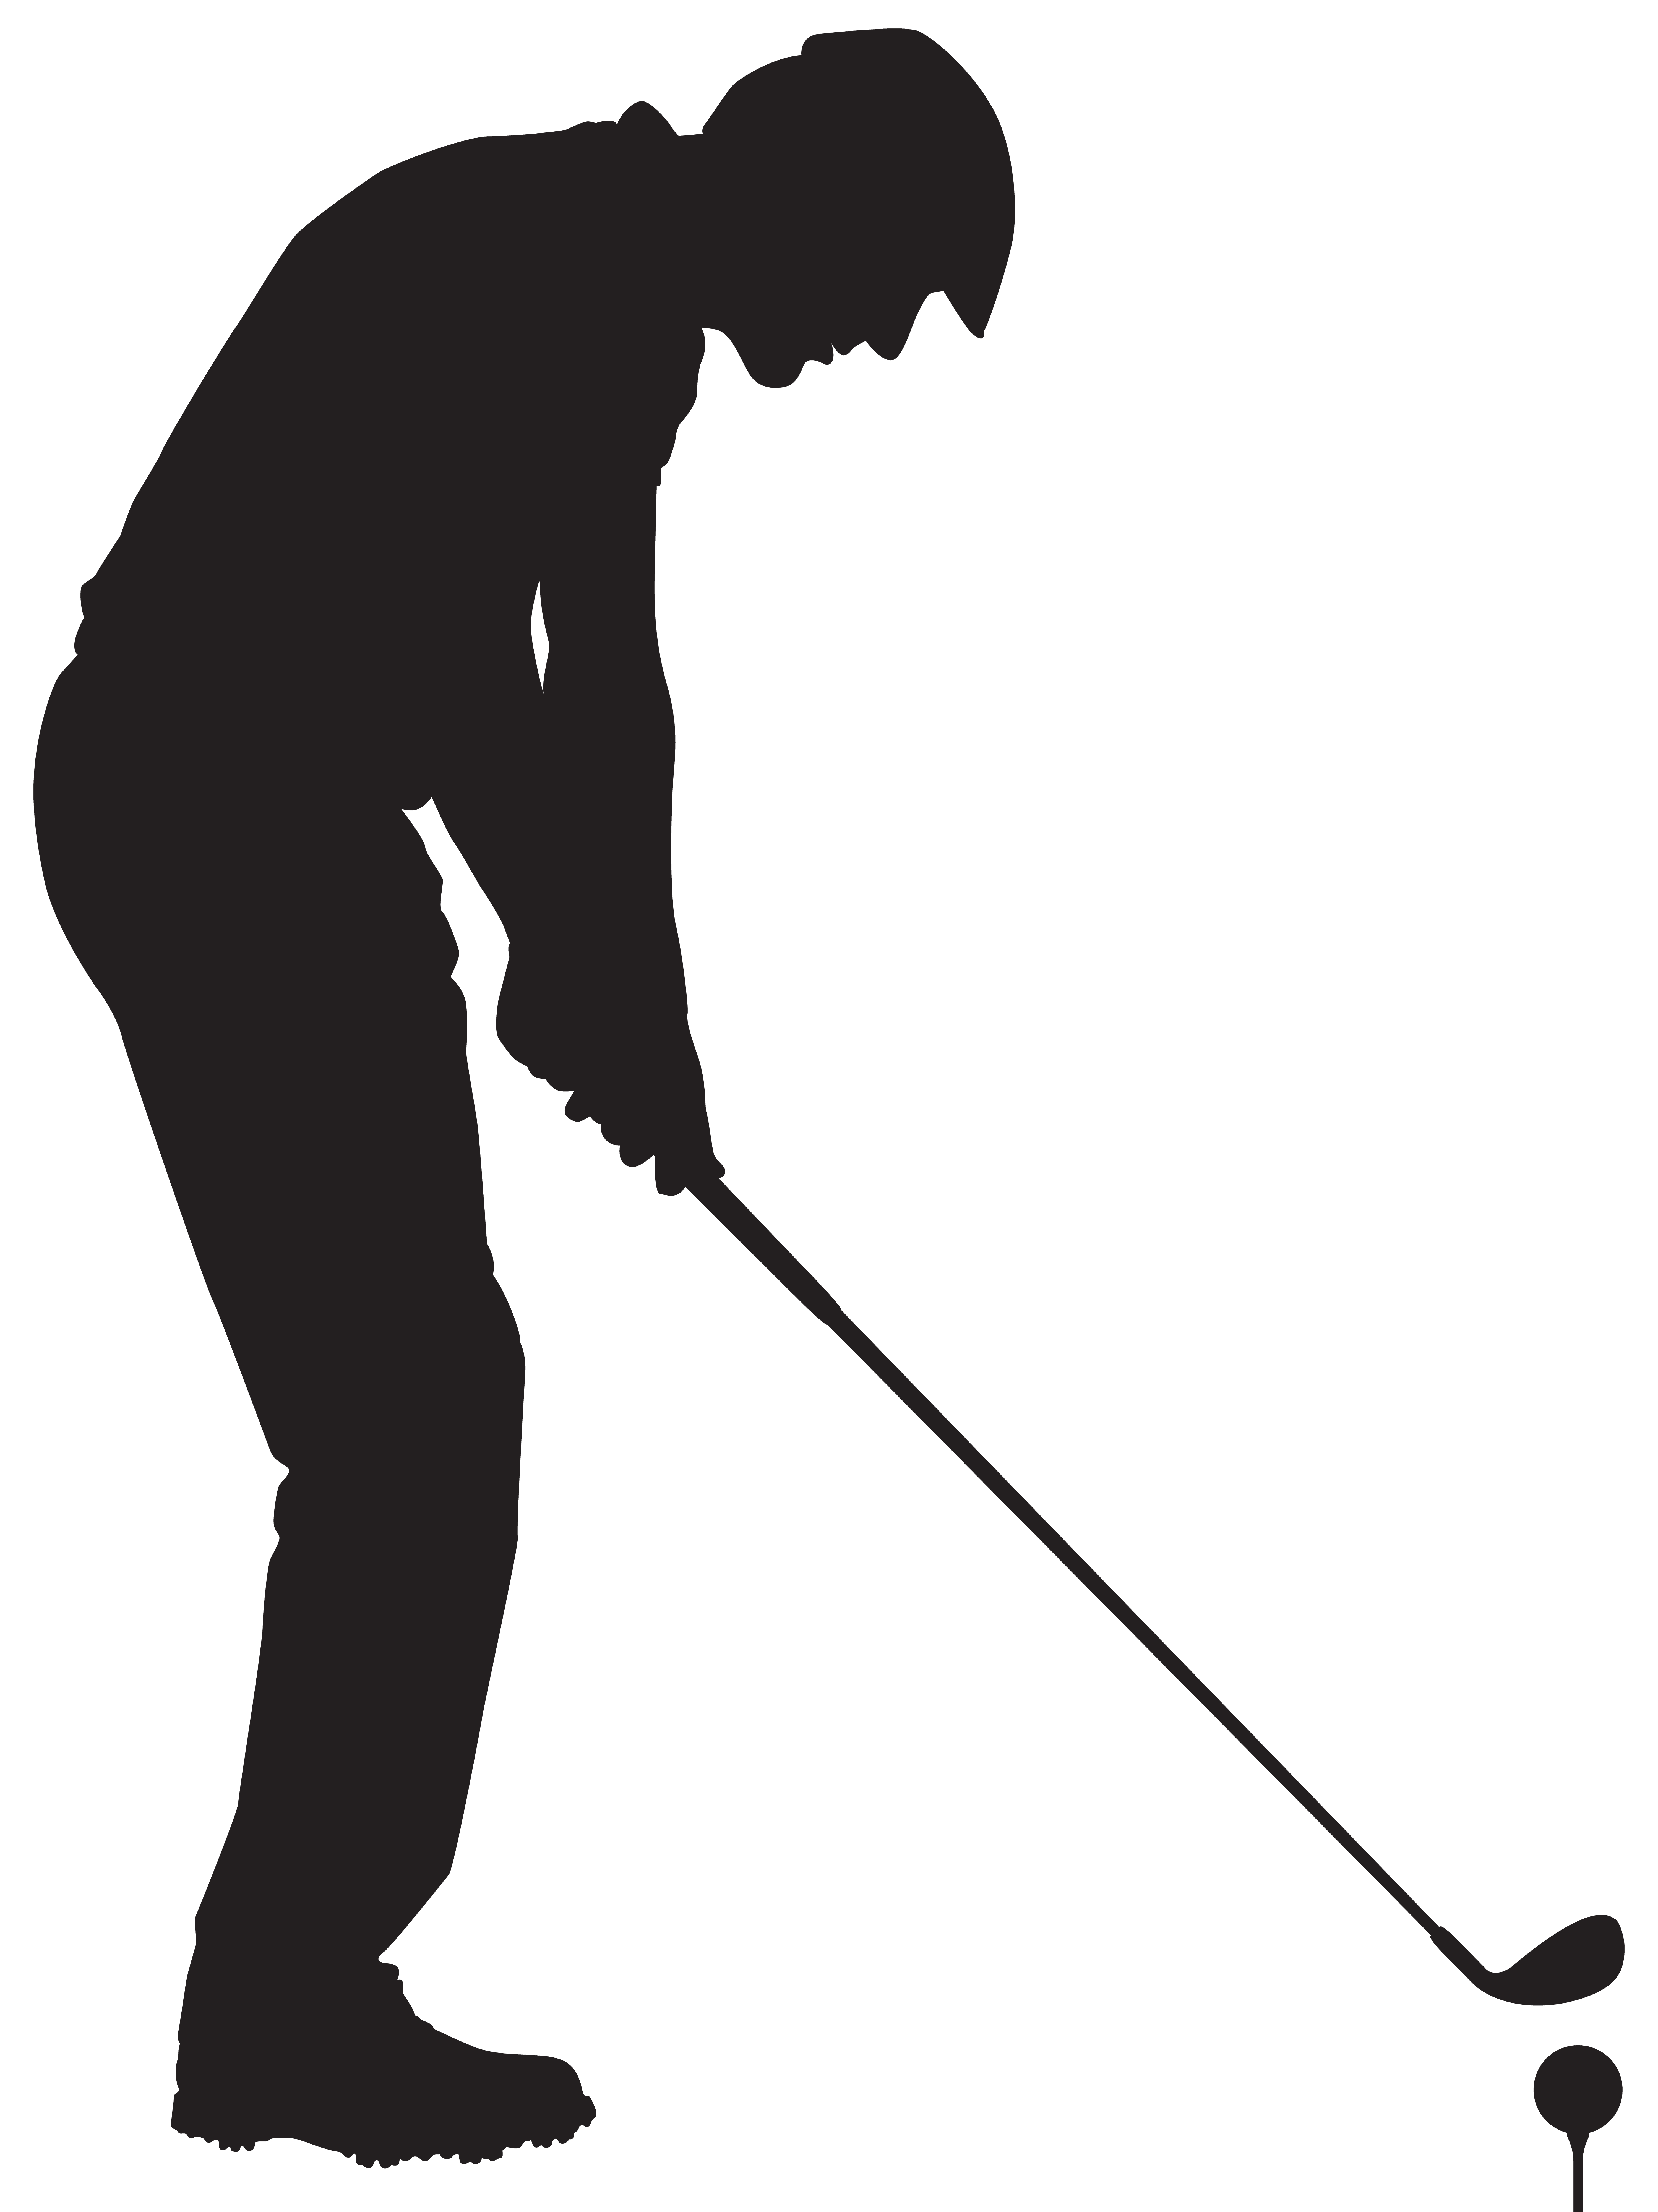 Golf clipart. Free throughout daily png